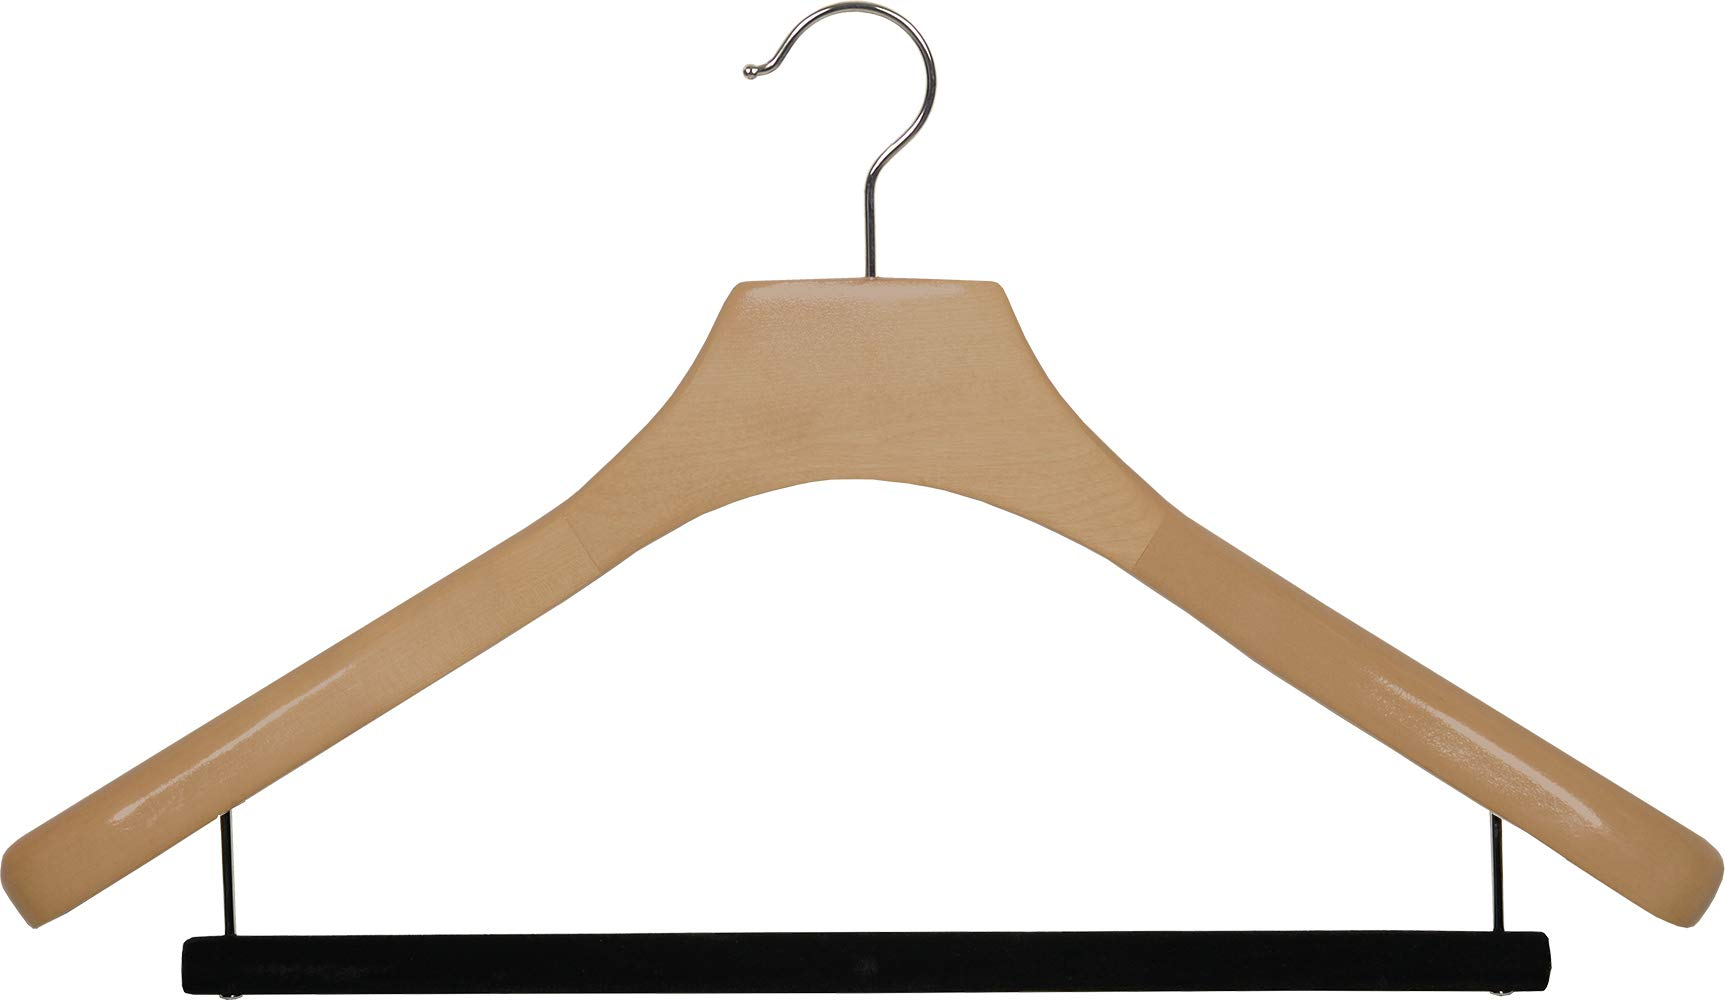 Deluxe Wooden Suit Hanger with Velvet Bar, Natural Finish & Chrome Swivel Hook, Large 2 Inch Wide Contoured Coat & Jacket Hangers (Set of 24) by The Great American Hanger Company